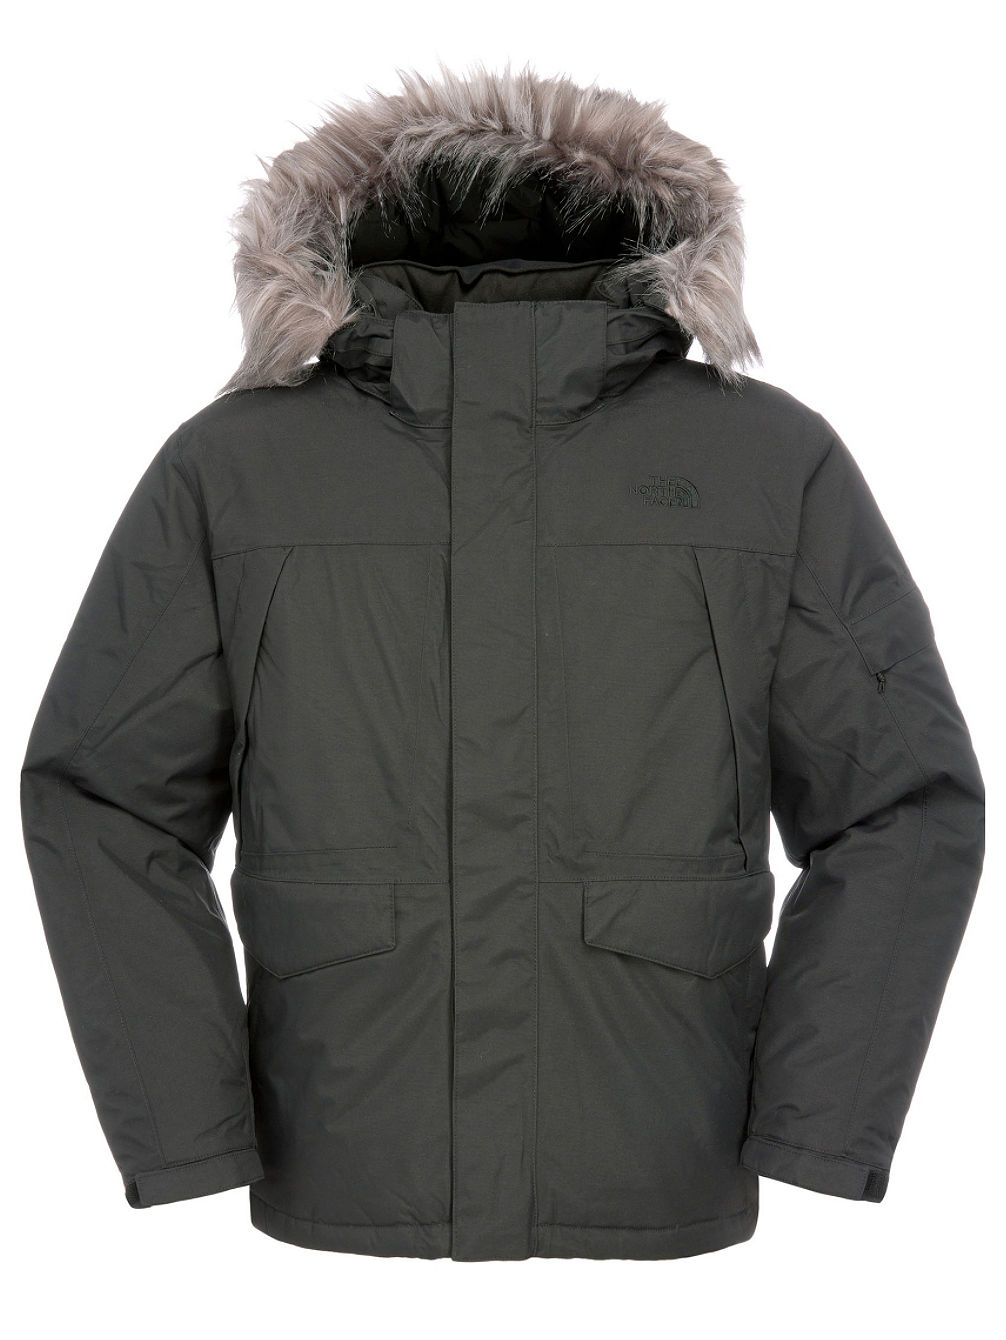 13fb811b83d3c5 THE NORTH FACE Ice Jacket online kaufen bei Blue Tomato